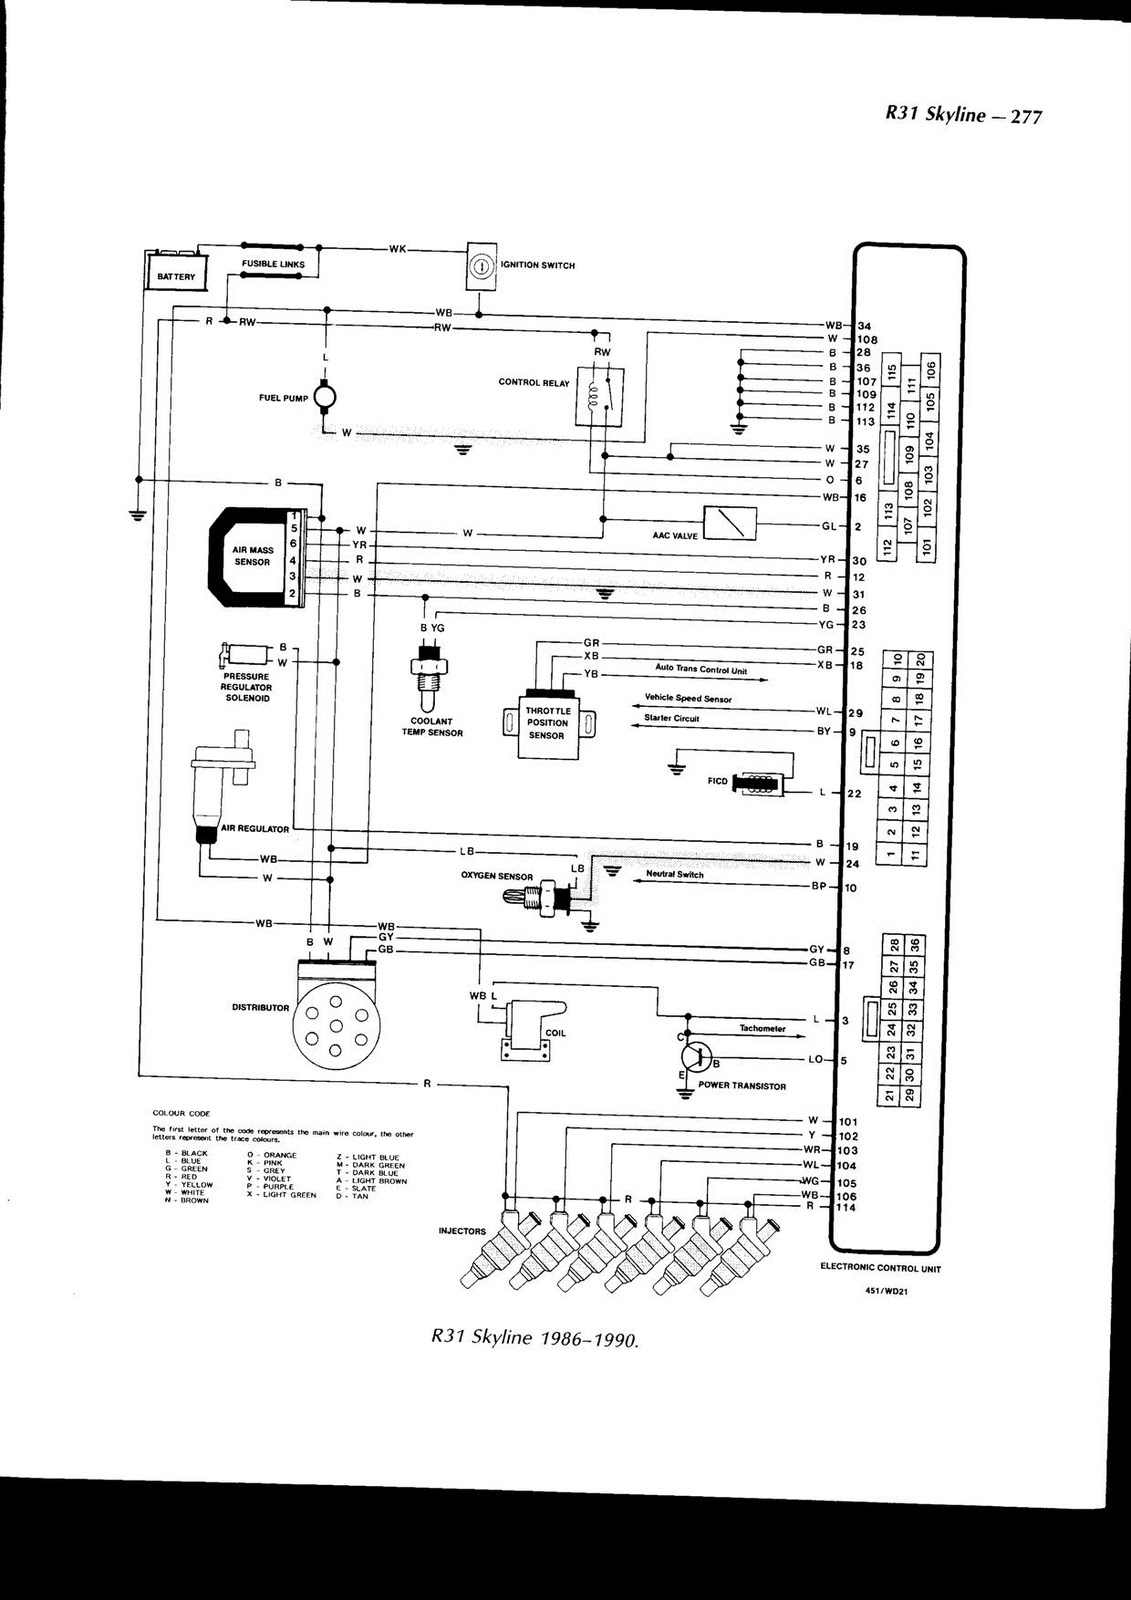 Rb25 Neo Colour Wiring Diagram 2000 Ford Explorer Front Suspension Nissan Skyline Rb25det Pinout